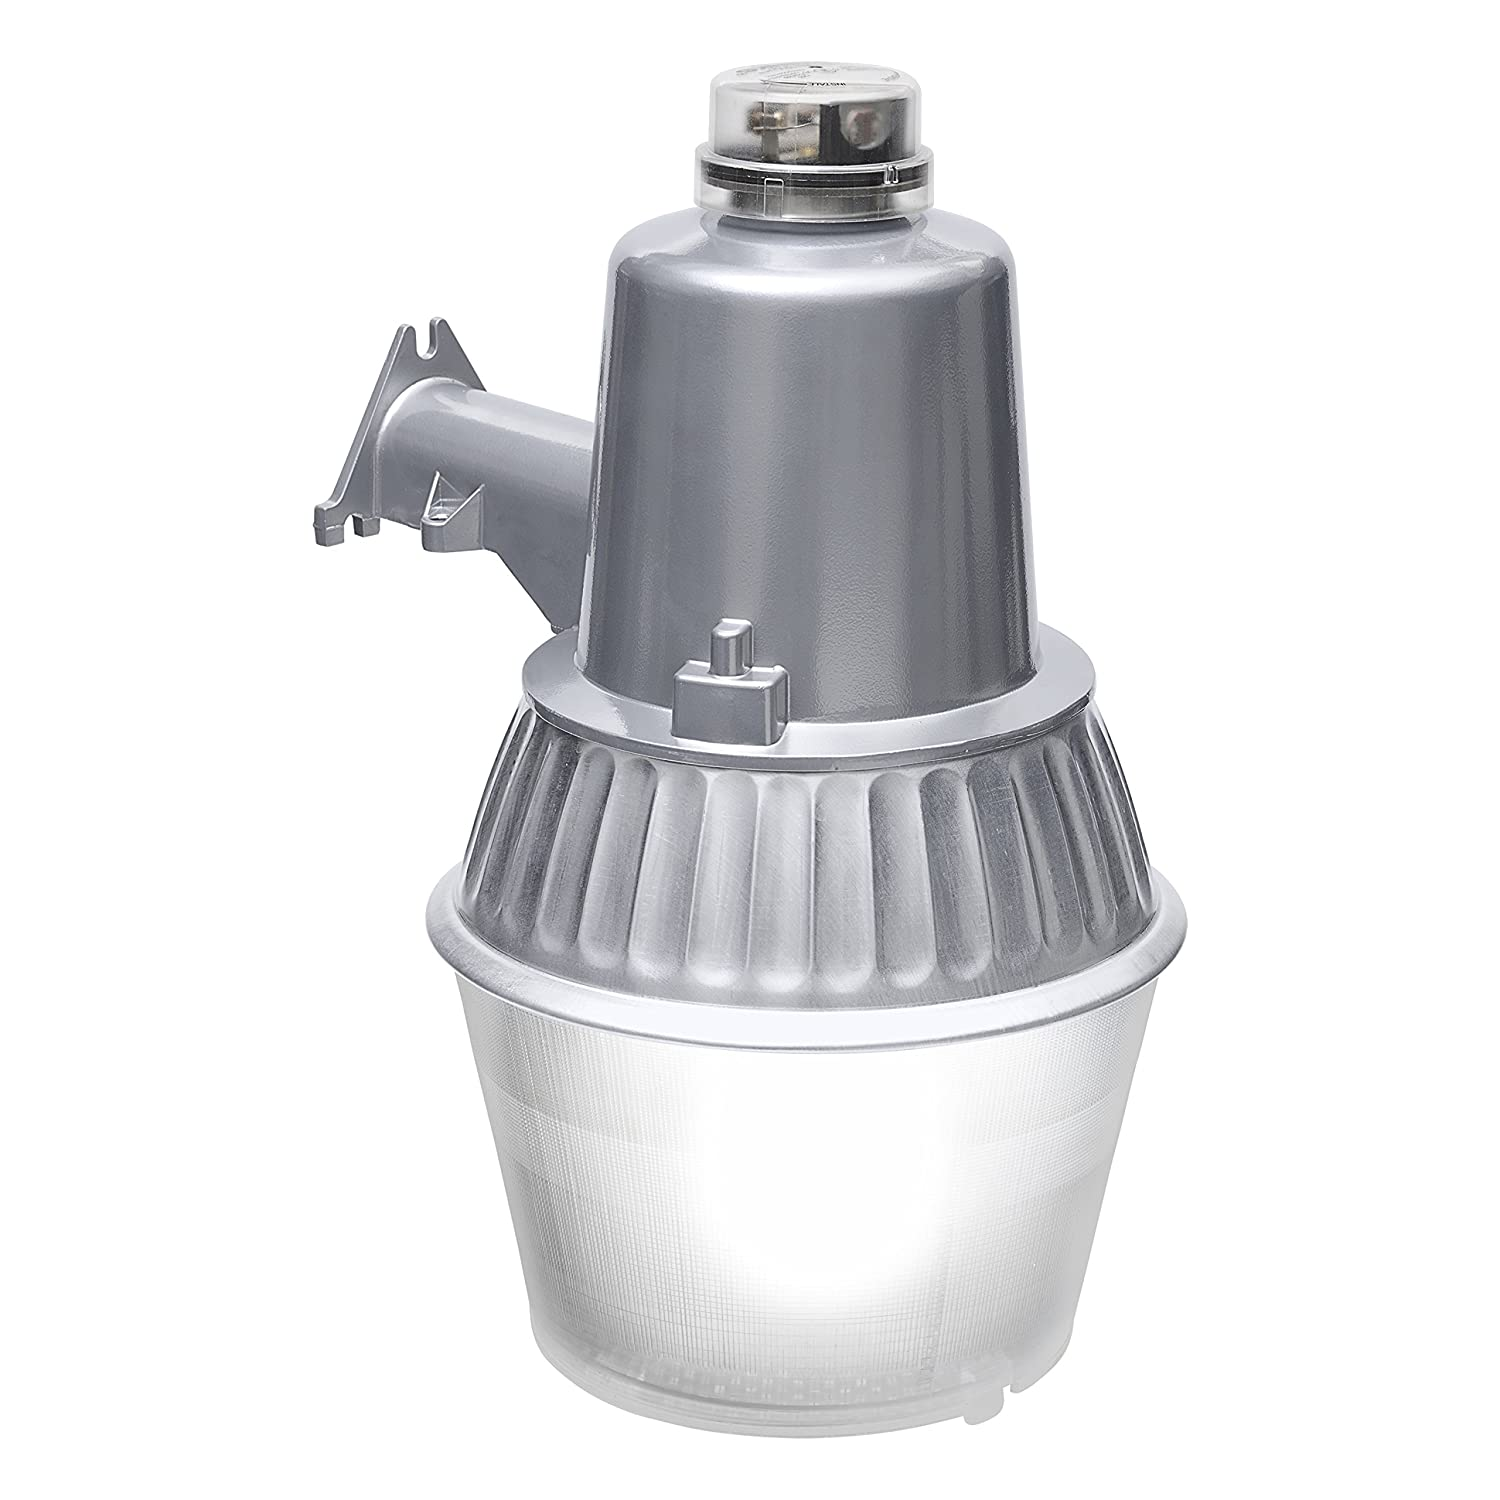 Brinks 7252 1 lgt metal halide fix 100w bulb light amazon aloadofball Choice Image